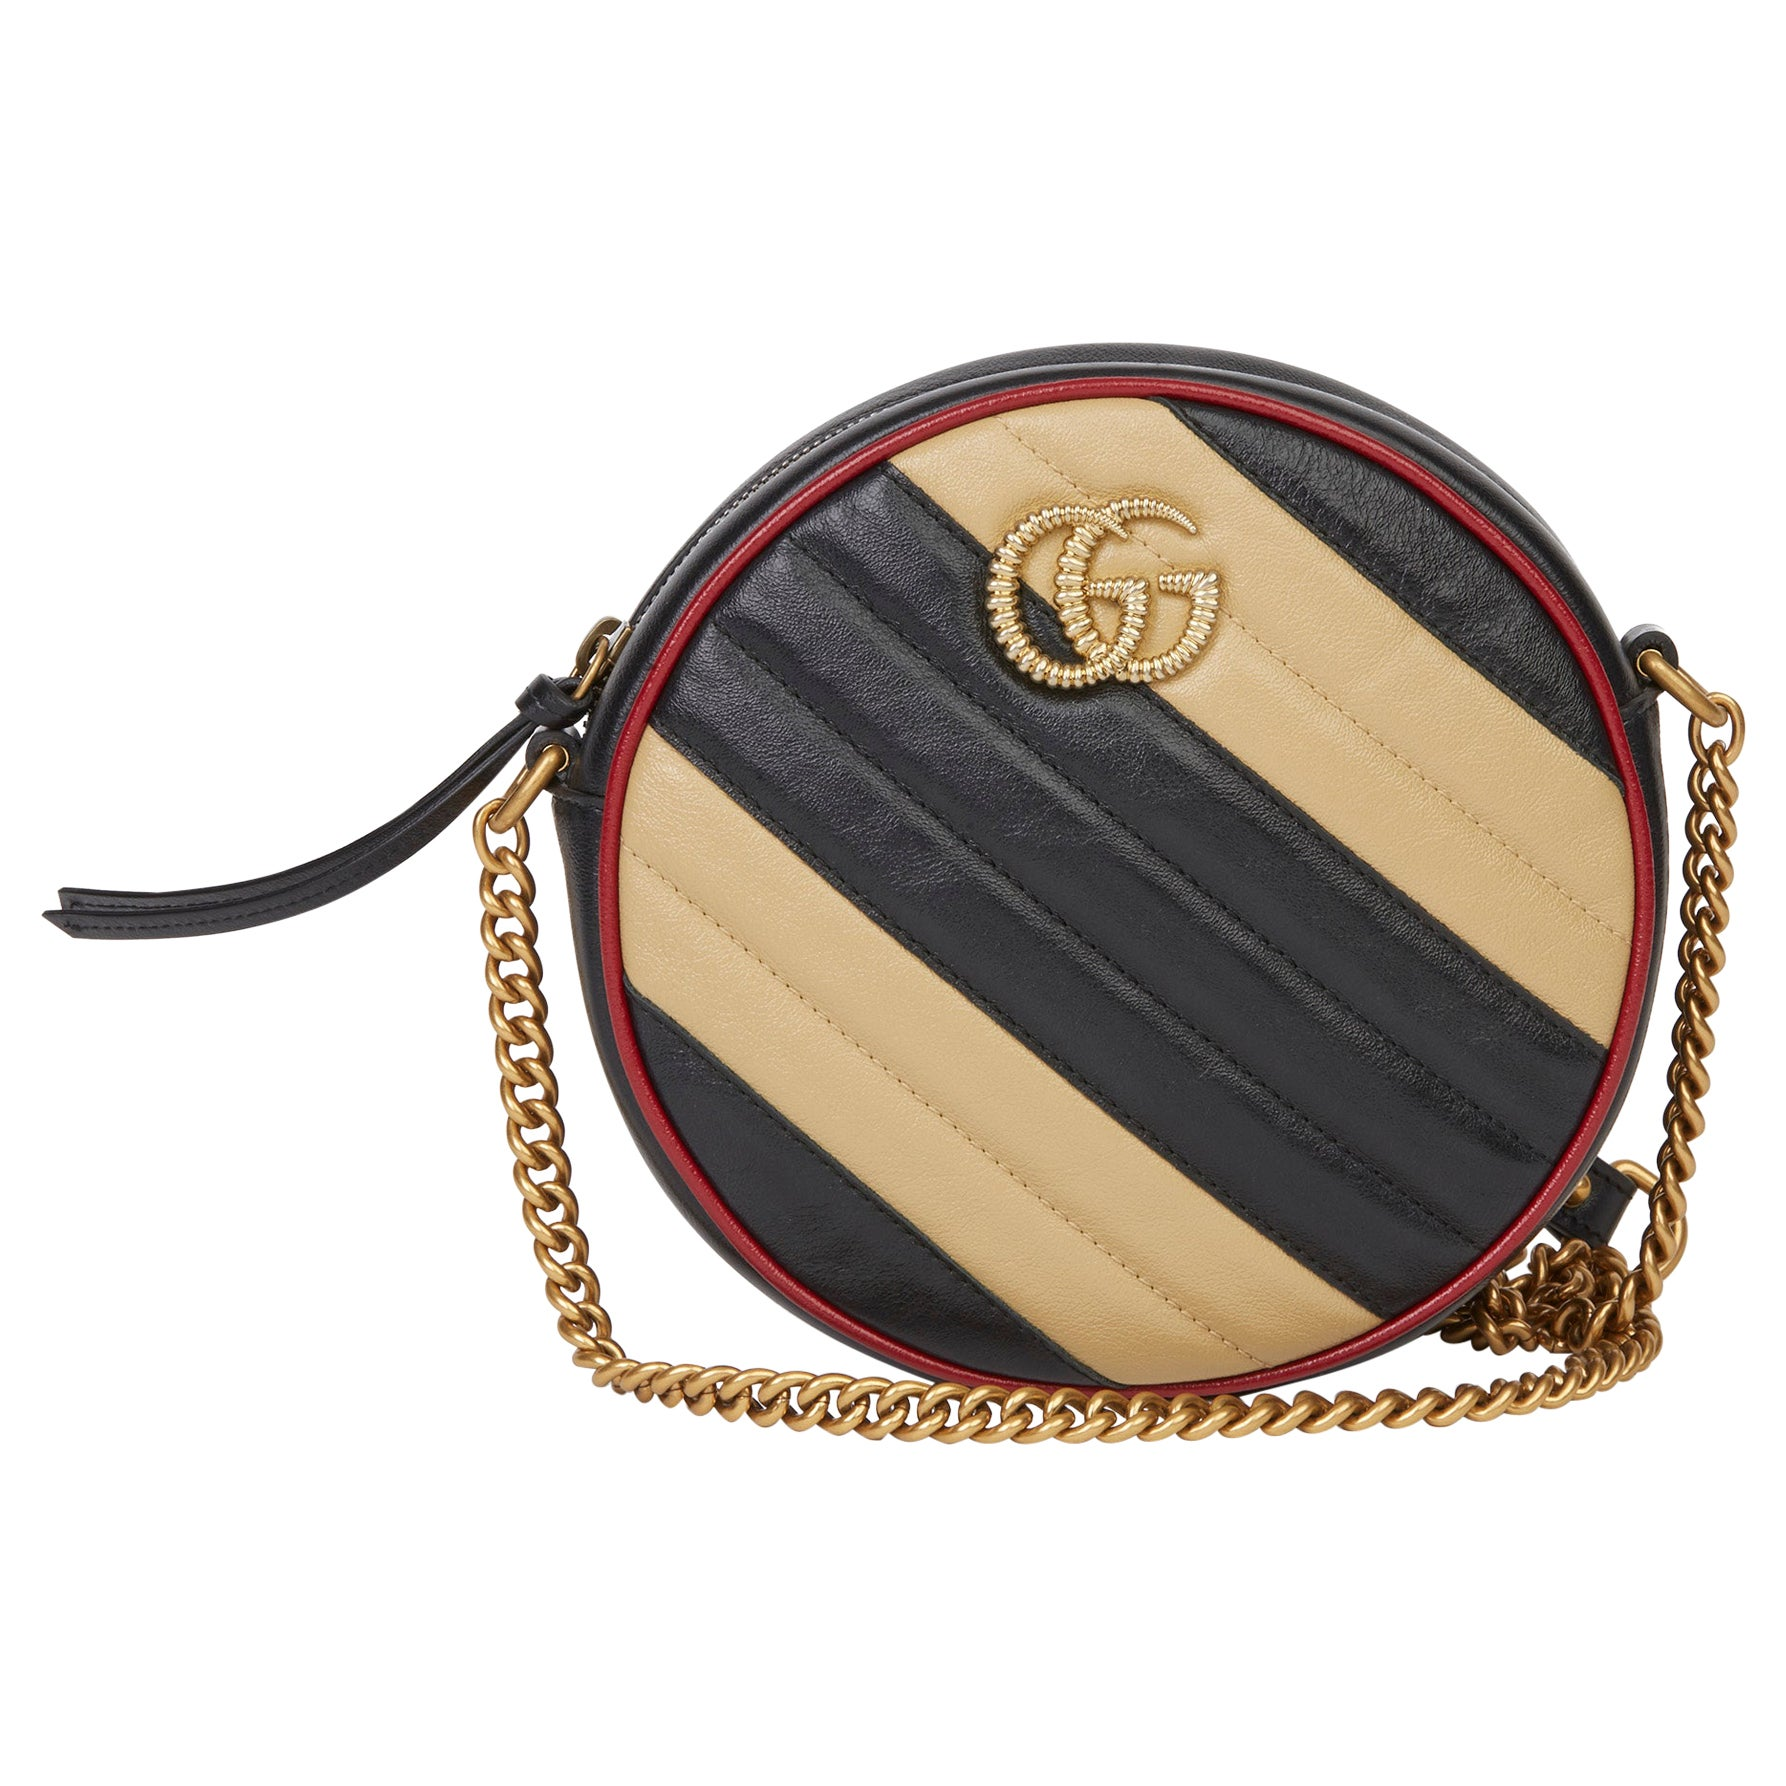 2020 Gucci Black, Cream & Red Diagonal Quilted Aged Calfskin Leather Mini Round